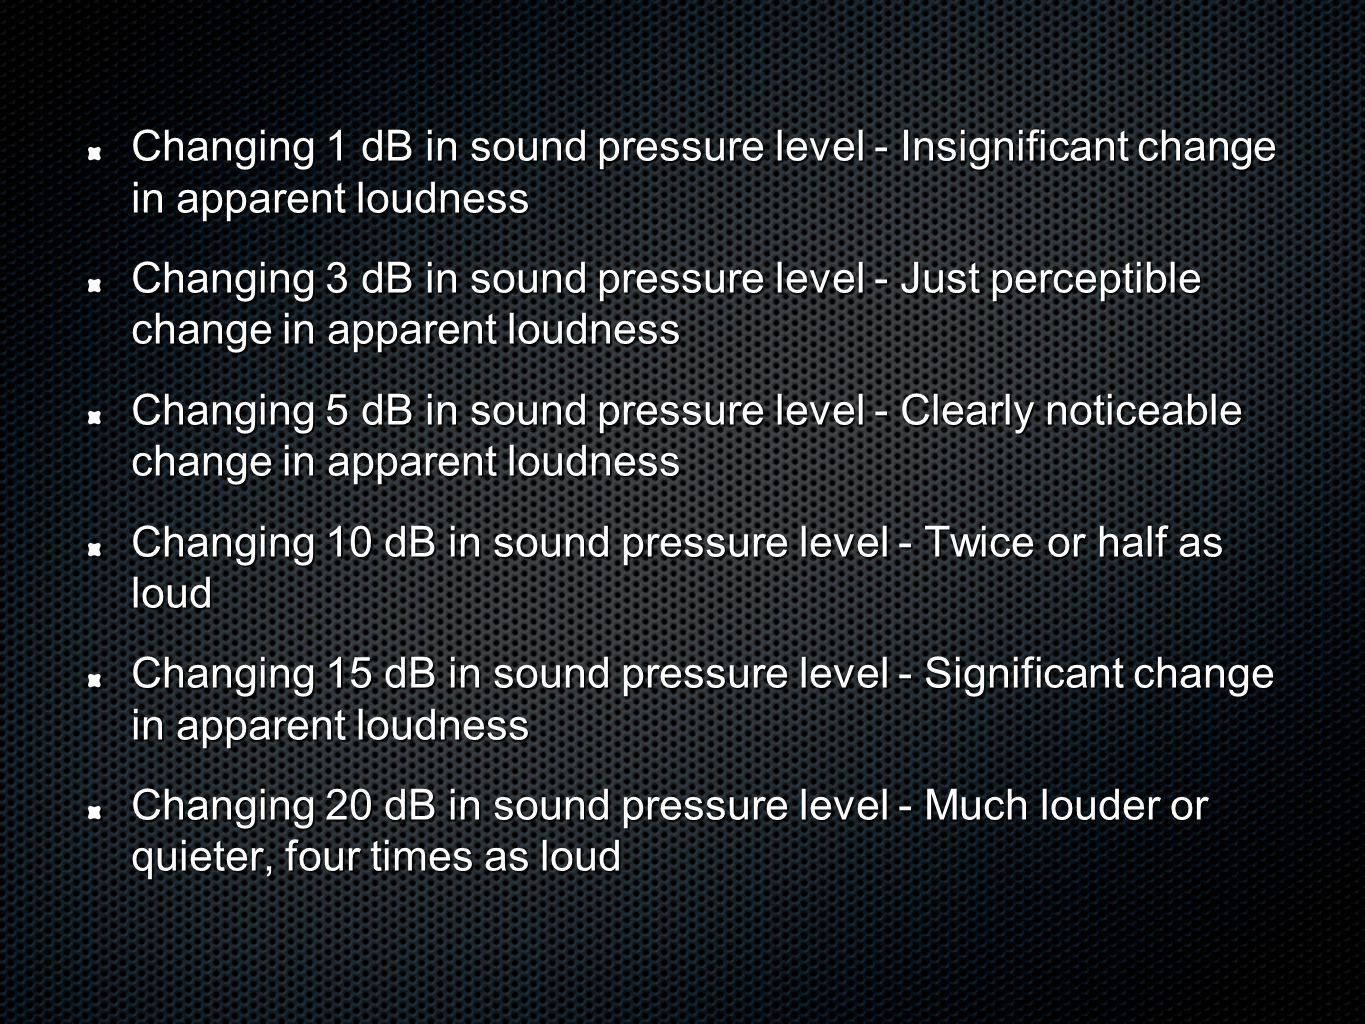 Changing 1 dB in sound pressure level - Insignificant change in apparent loudness Changing 3 dB in sound pressure level - Just perceptible change in apparent loudness Changing 5 dB in sound pressure level - Clearly noticeable change in apparent loudness Changing 10 dB in sound pressure level - Twice or half as loud Changing 15 dB in sound pressure level - Significant change in apparent loudness Changing 20 dB in sound pressure level - Much louder or quieter, four times as loud